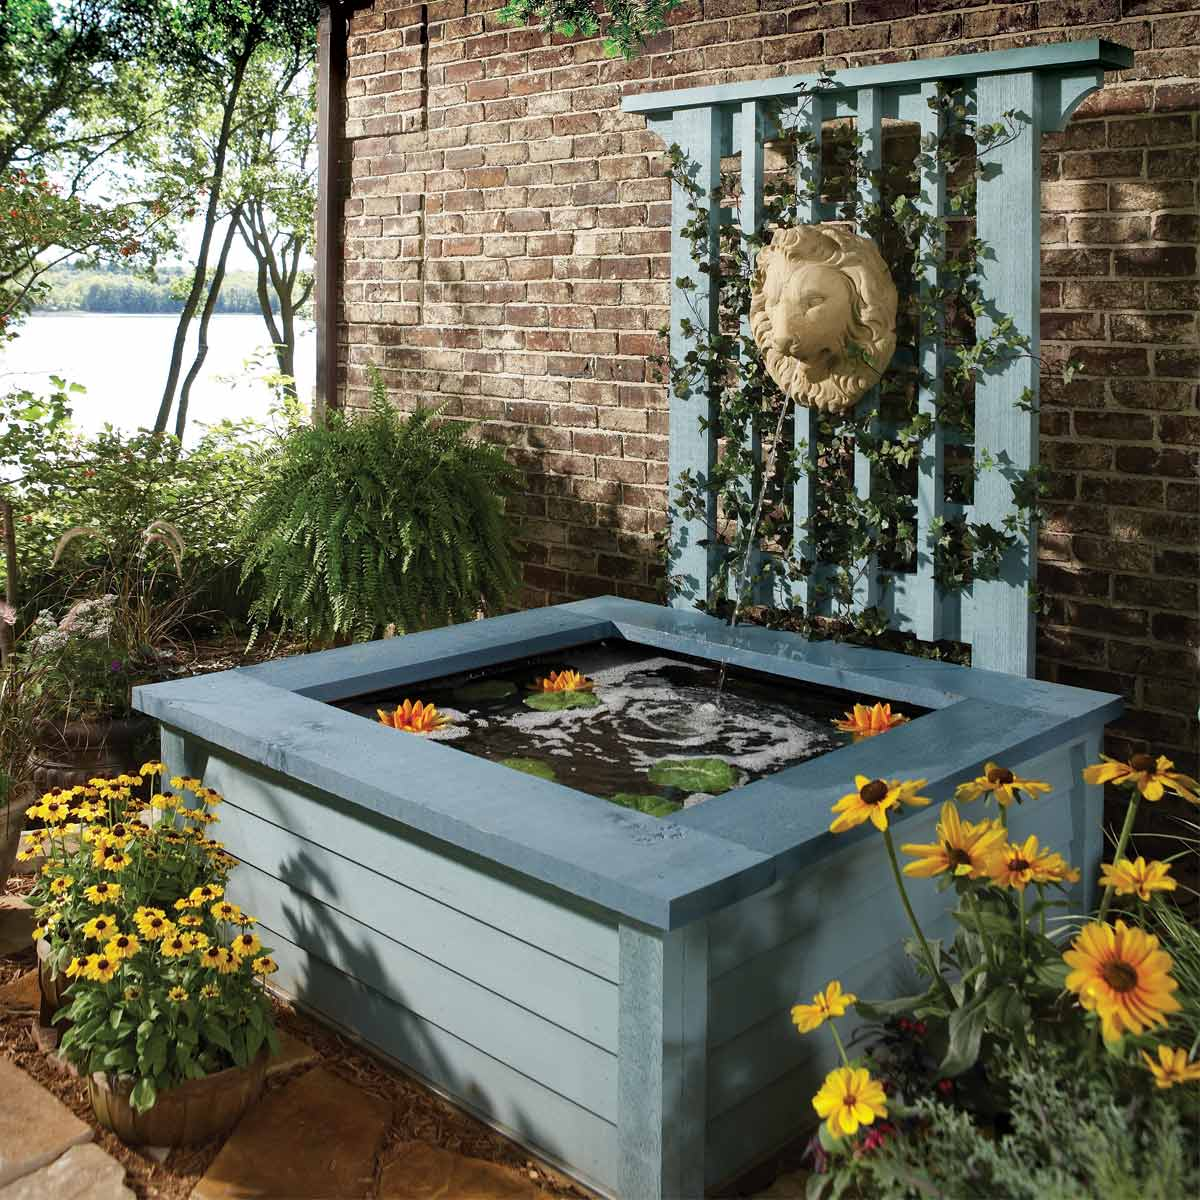 Pond in a Box: These projects will help you transform your space.